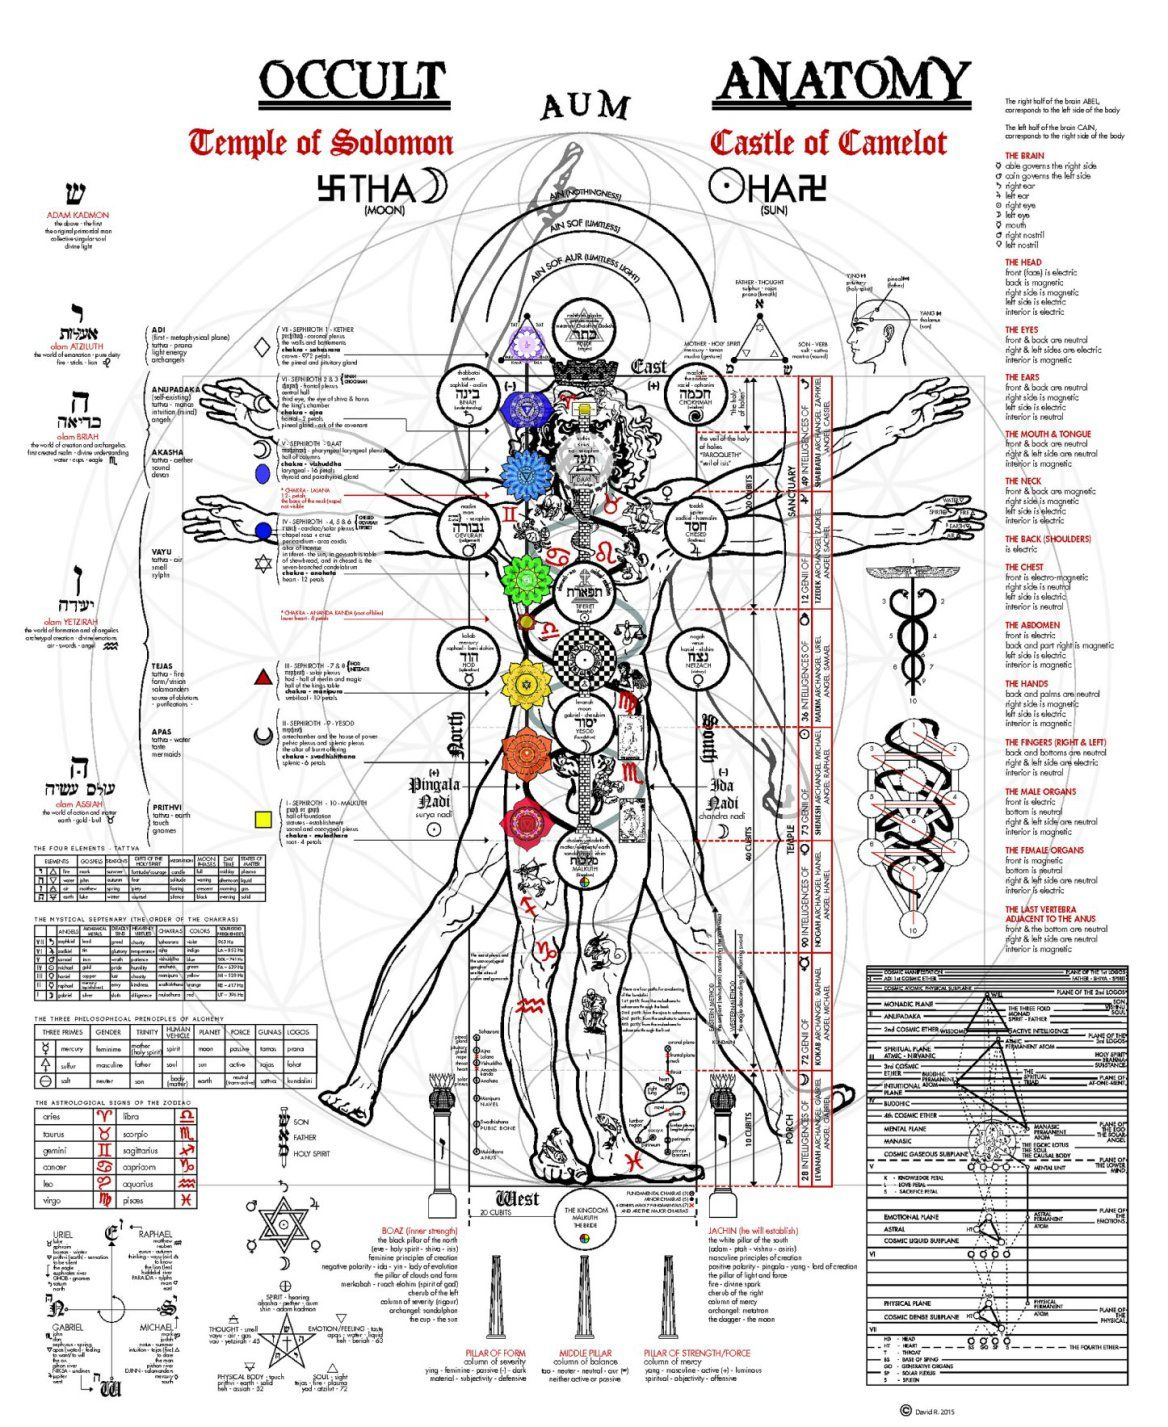 Esoterica The Vitruvian Man Updated Occult Anatomy And Human Body